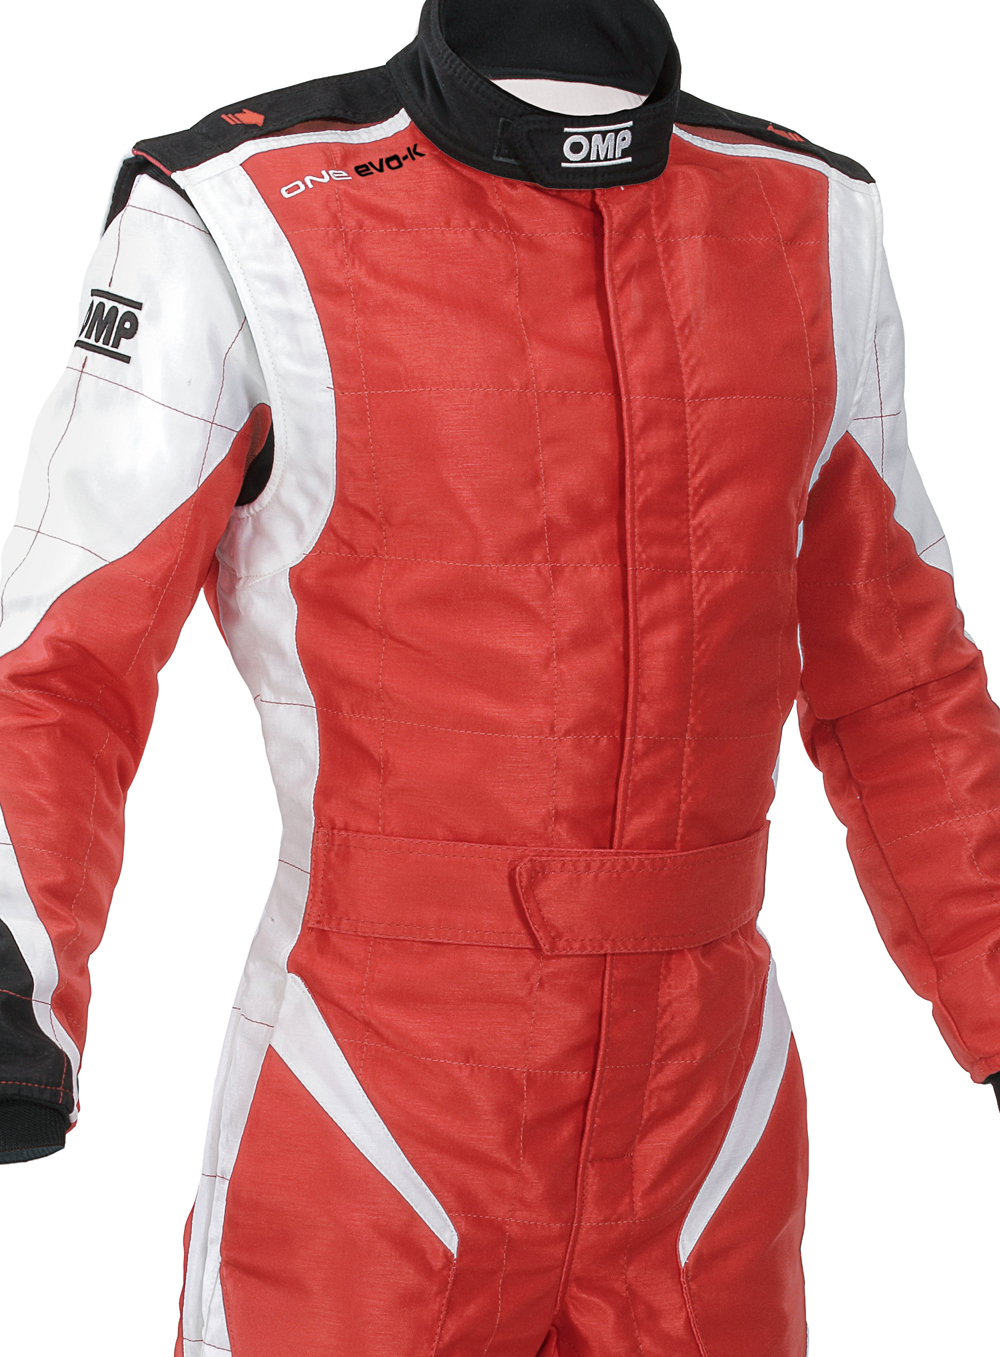 Kk01716 Omp One Evo K Kart Race Suit Size 44 Red White